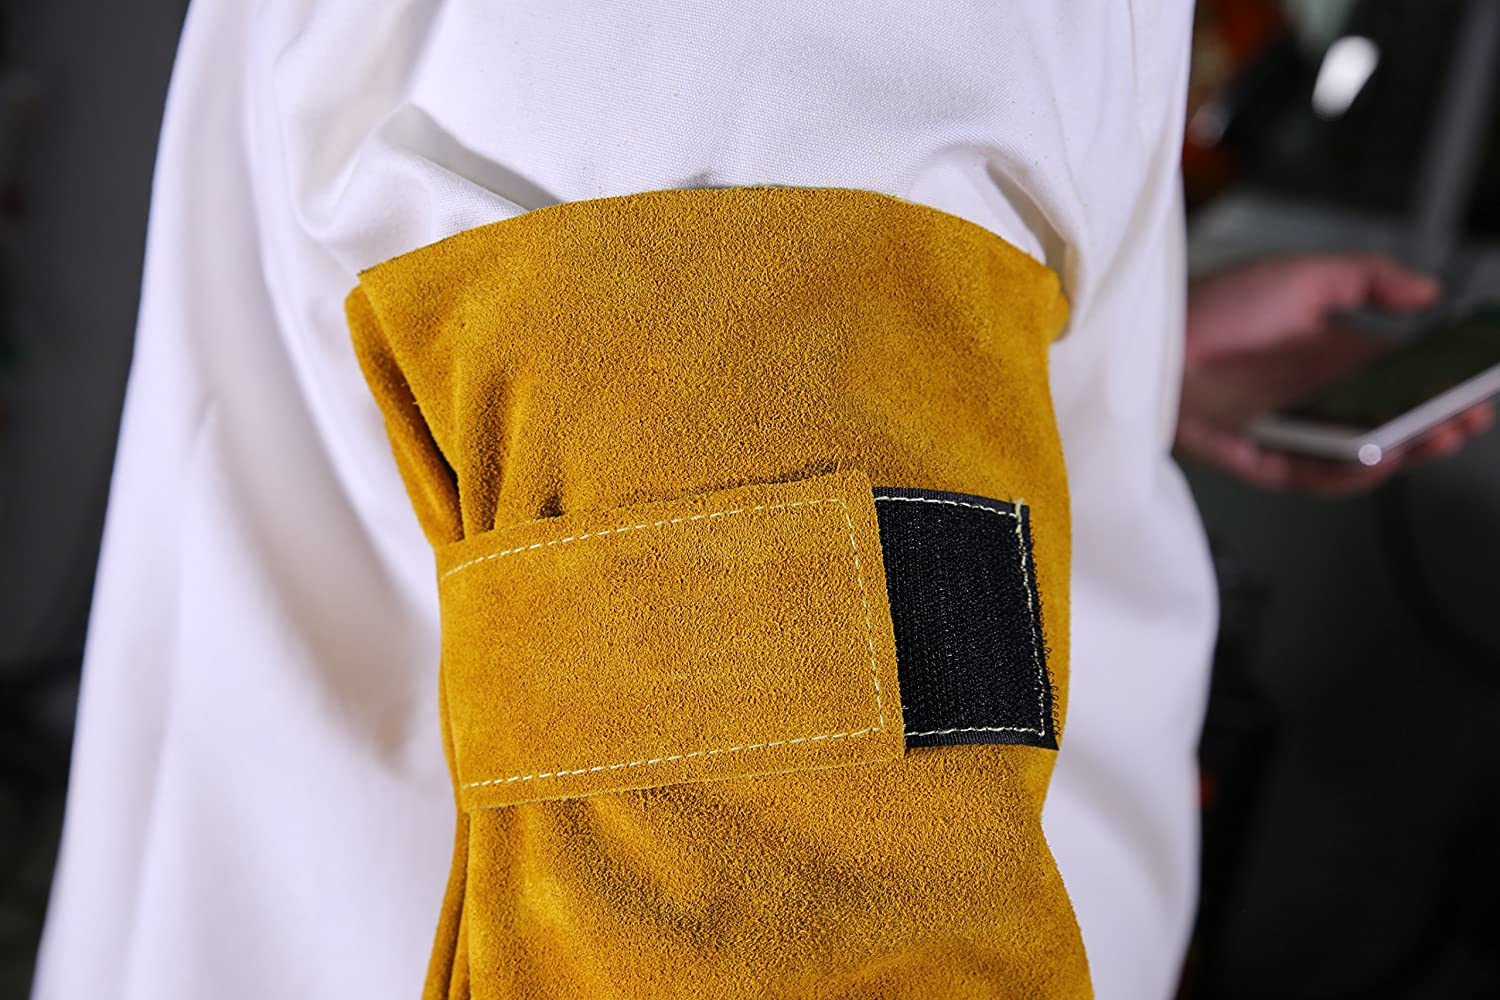 AP-9119 Golden ColorSplit Leather arm Protective Sleeves in Pair Height 19 inch